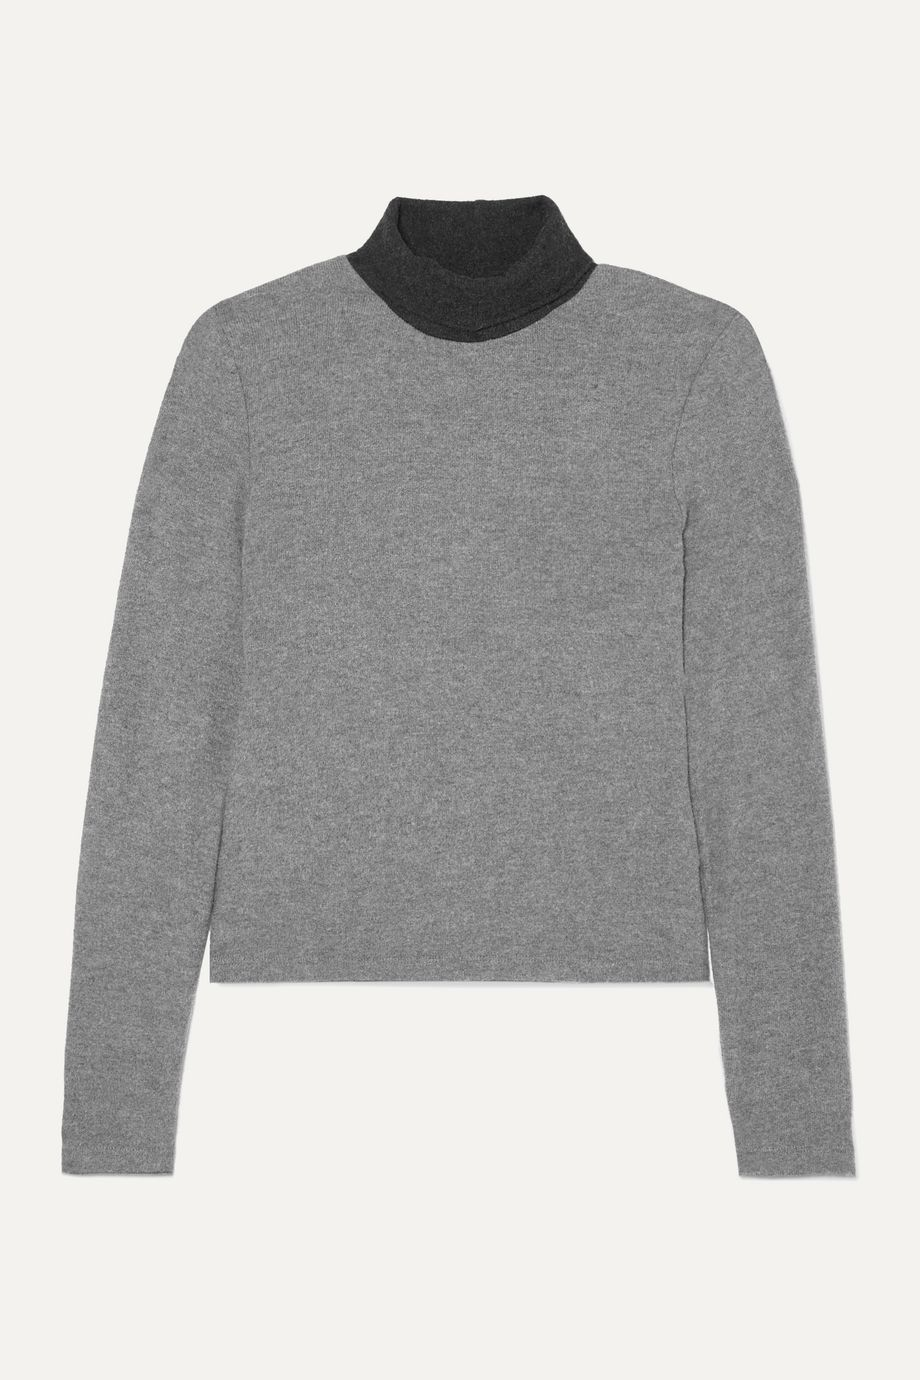 LESET Lori two-tone brushed stretch-knit turtleneck sweater